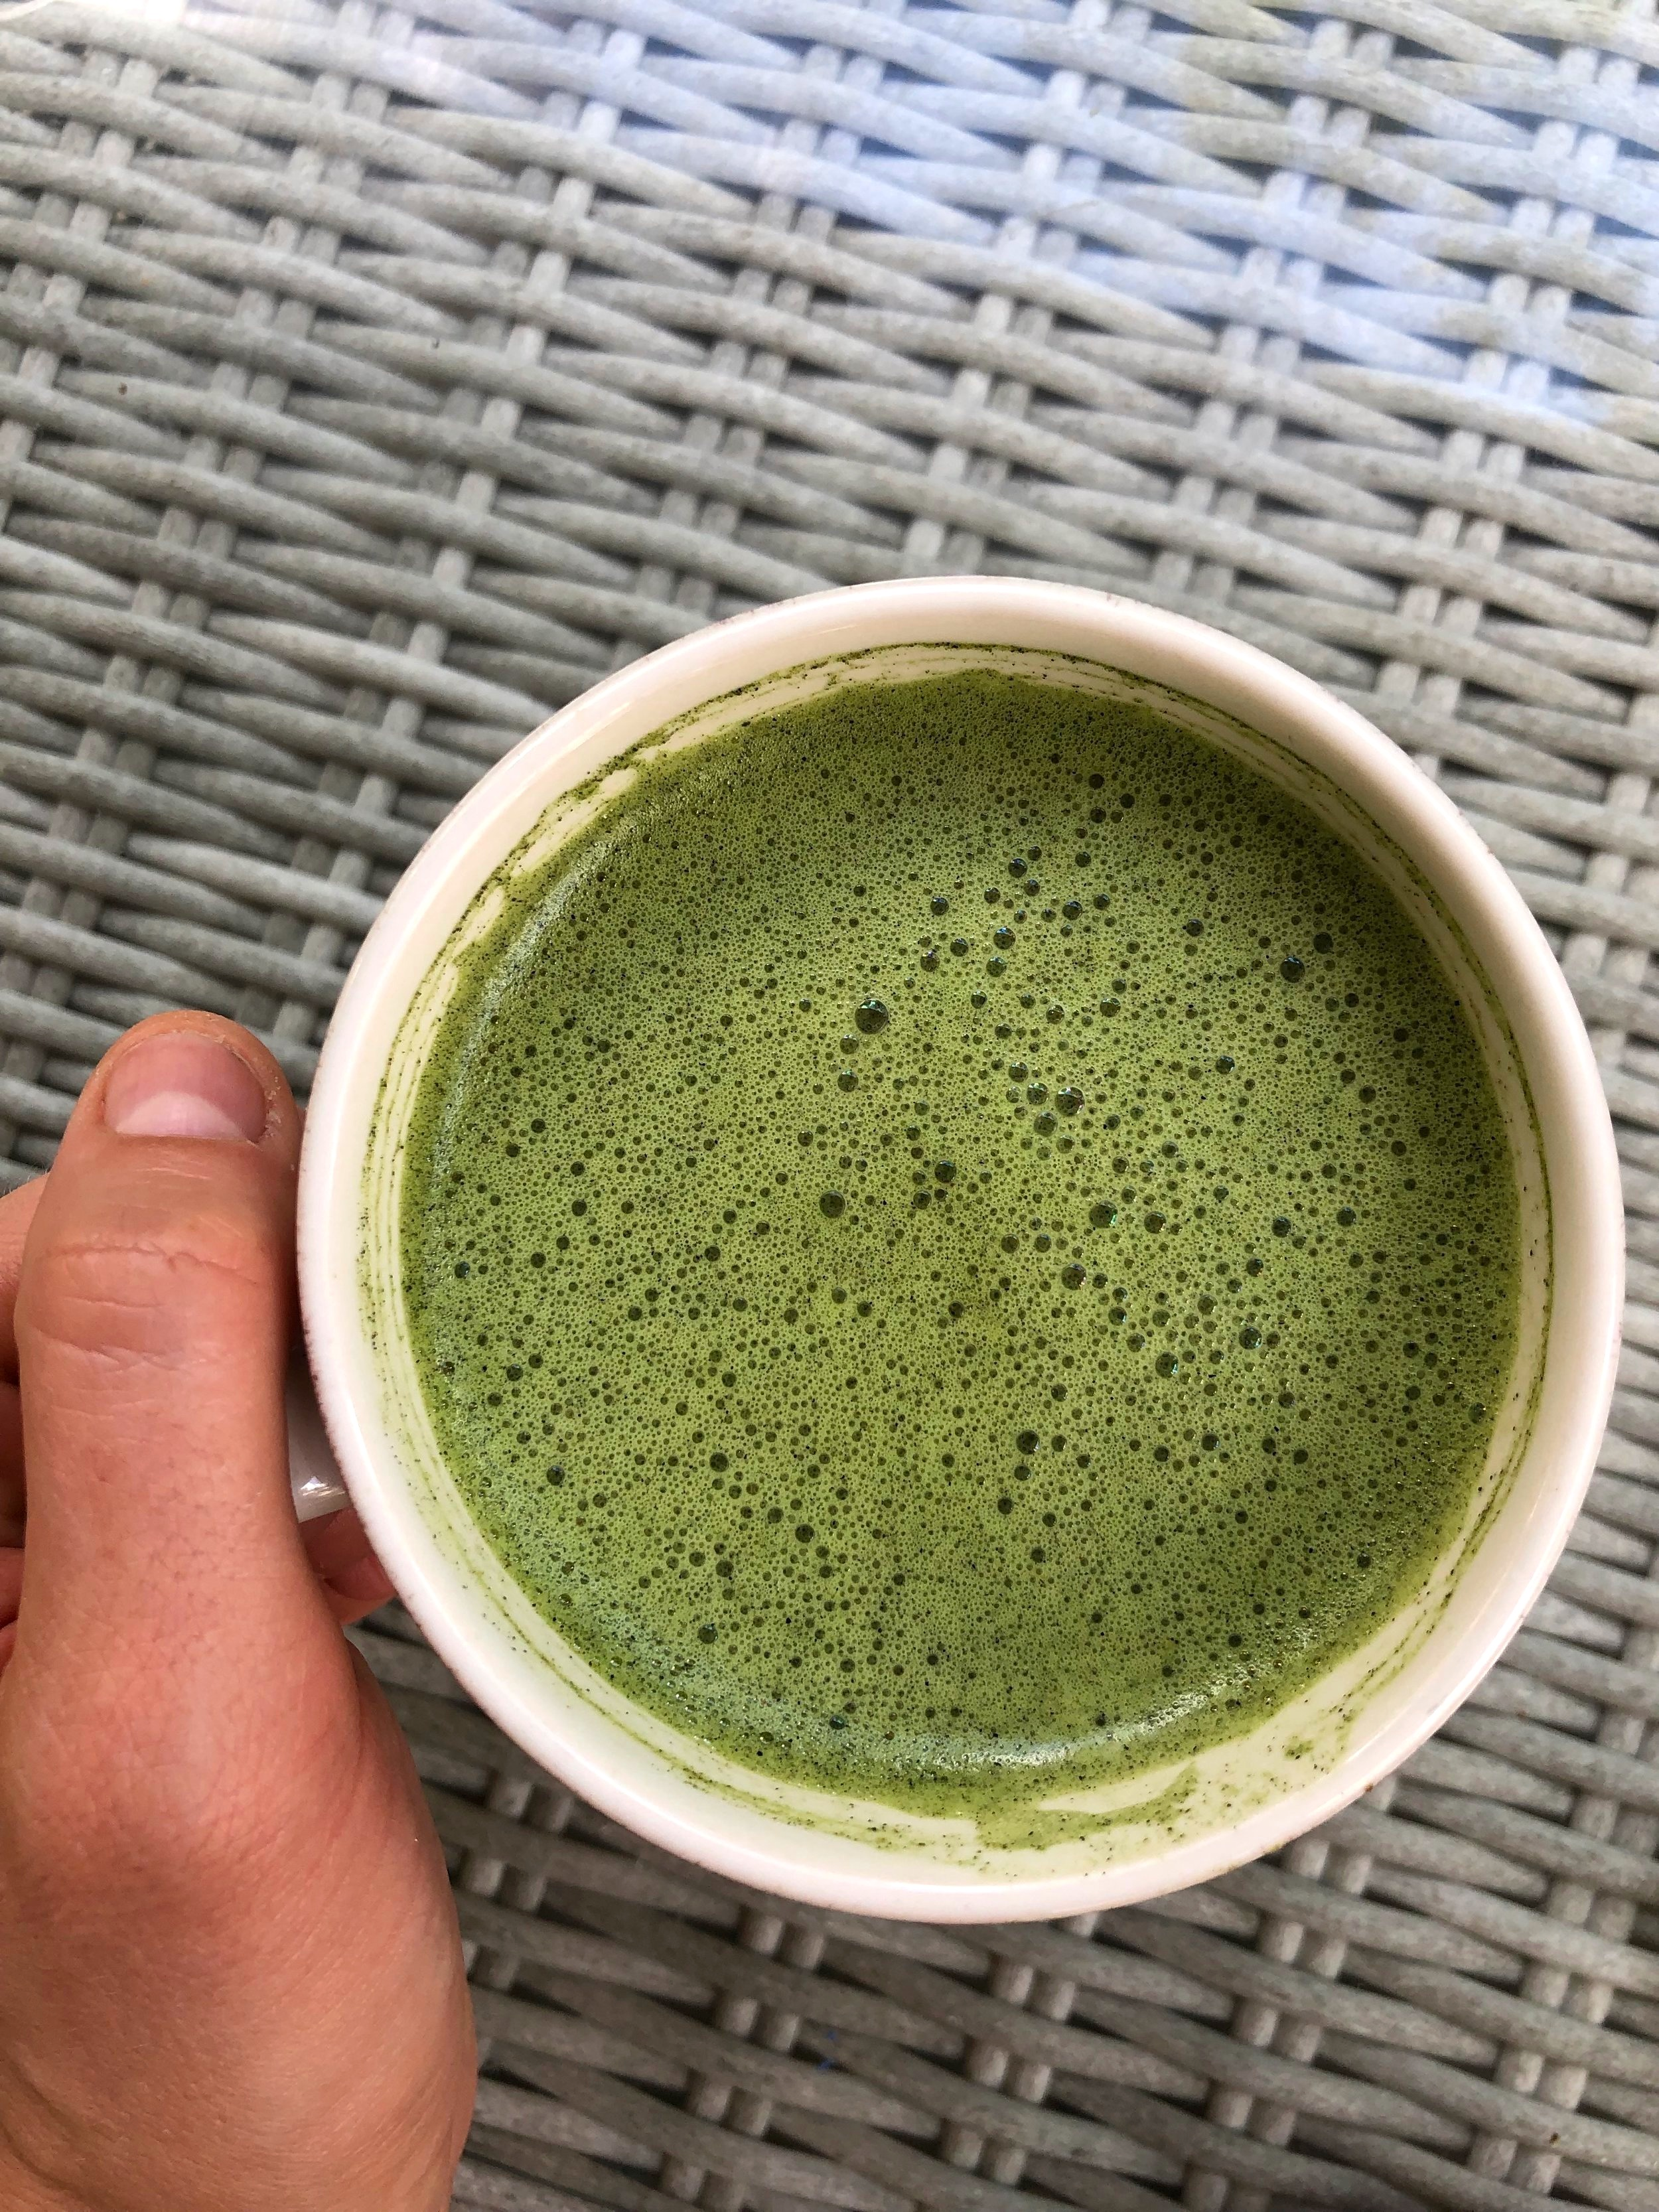 Matcha in Mexico, bought it with me!